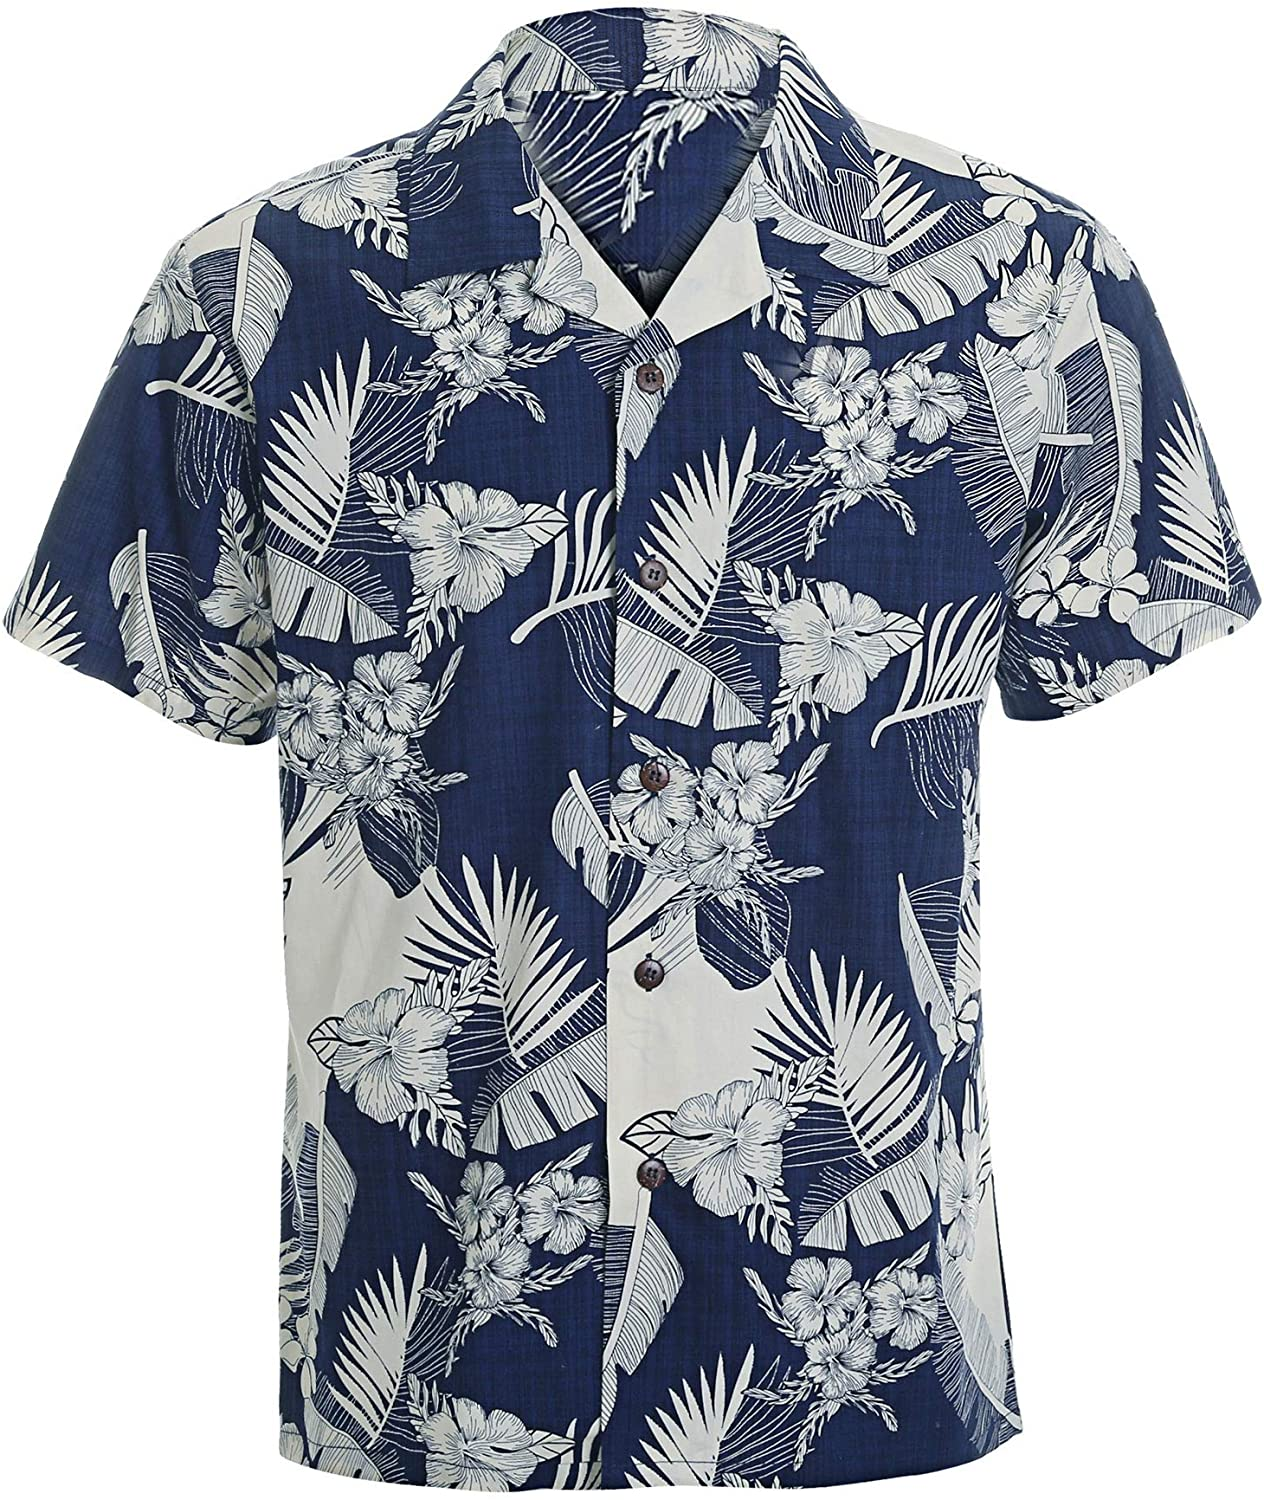 Year In Year Out Mens Hawaiian Shirt Regular Fit Hawaiian Shirts for Men with Quick to Dry Effect